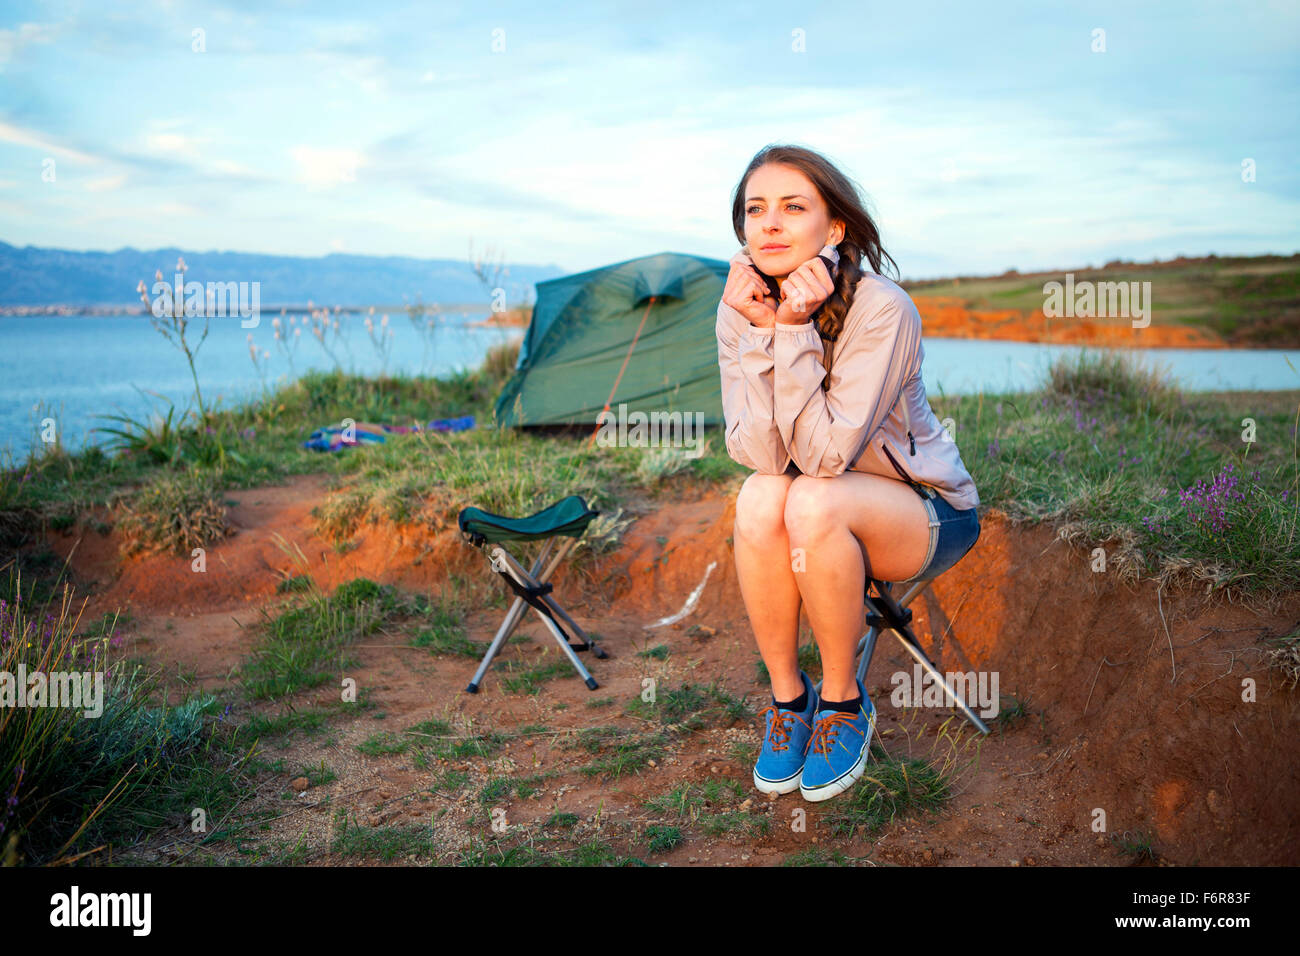 Young woman at campsite day dreaming - Stock Image